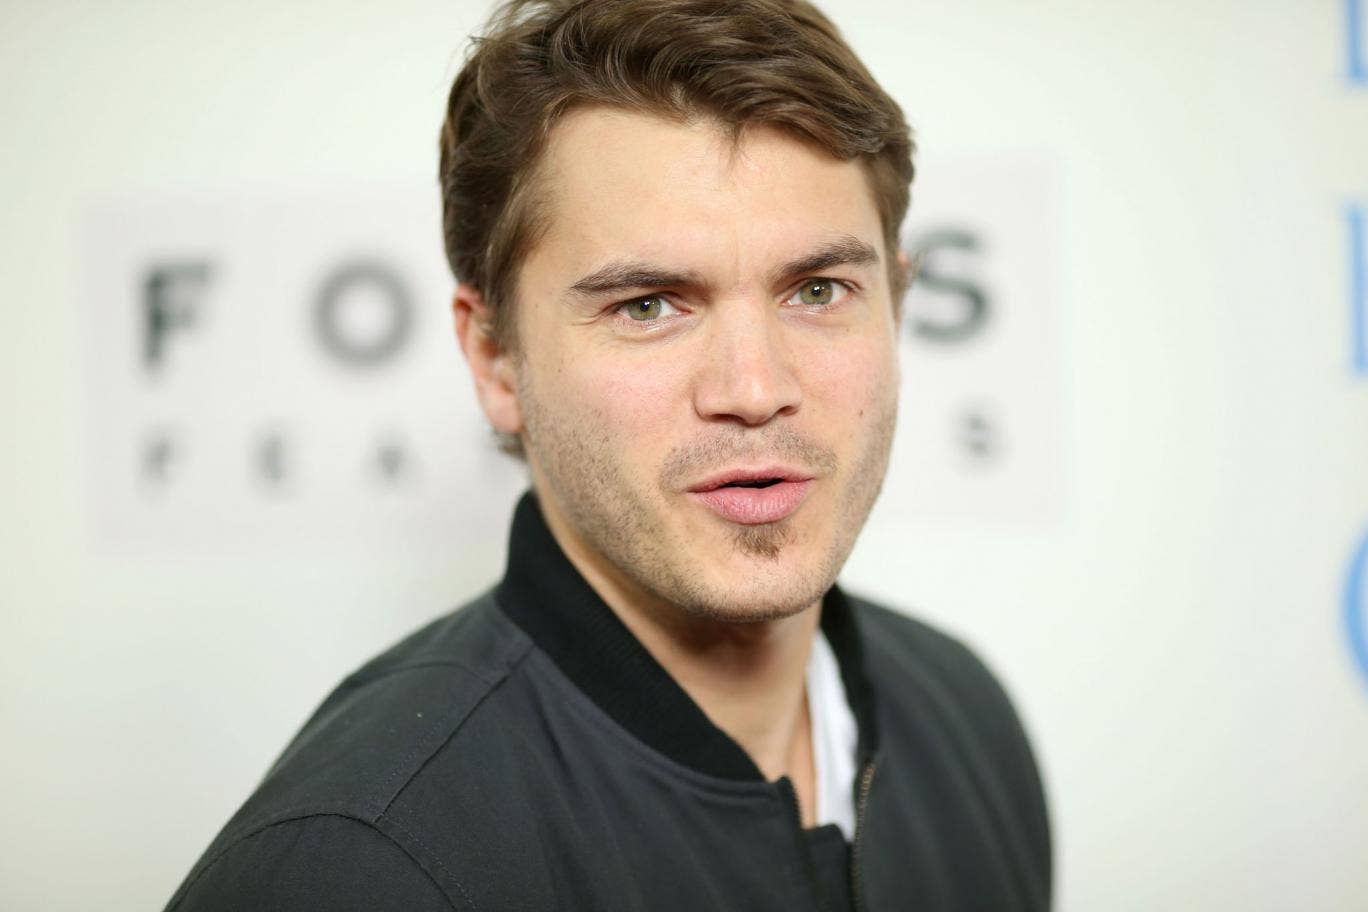 Emile Hirsch has been cast as John Belushi in a biopic about the comedian's life